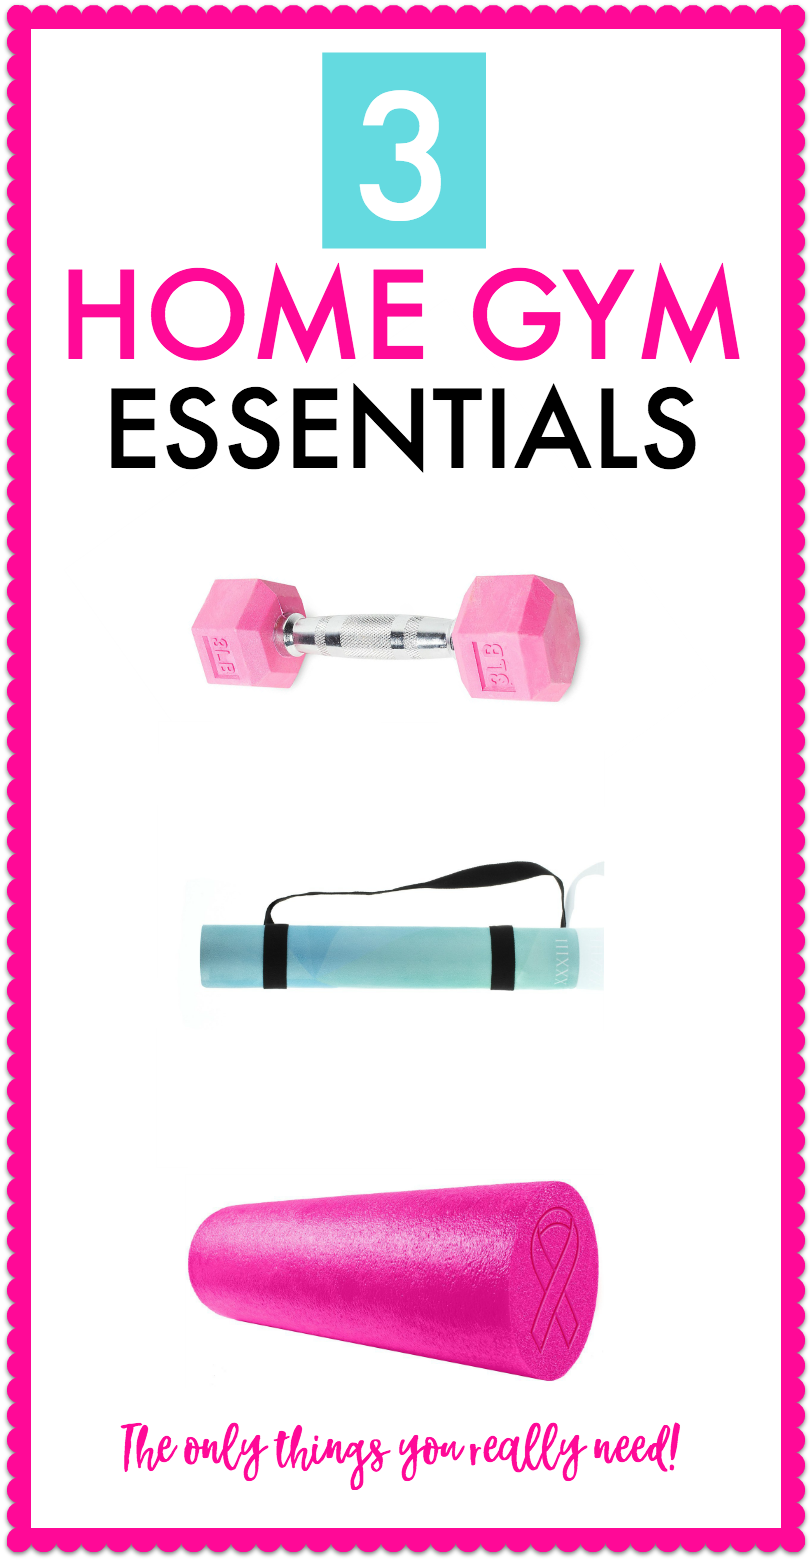 What essentials do you need for your home gym? Find out here.